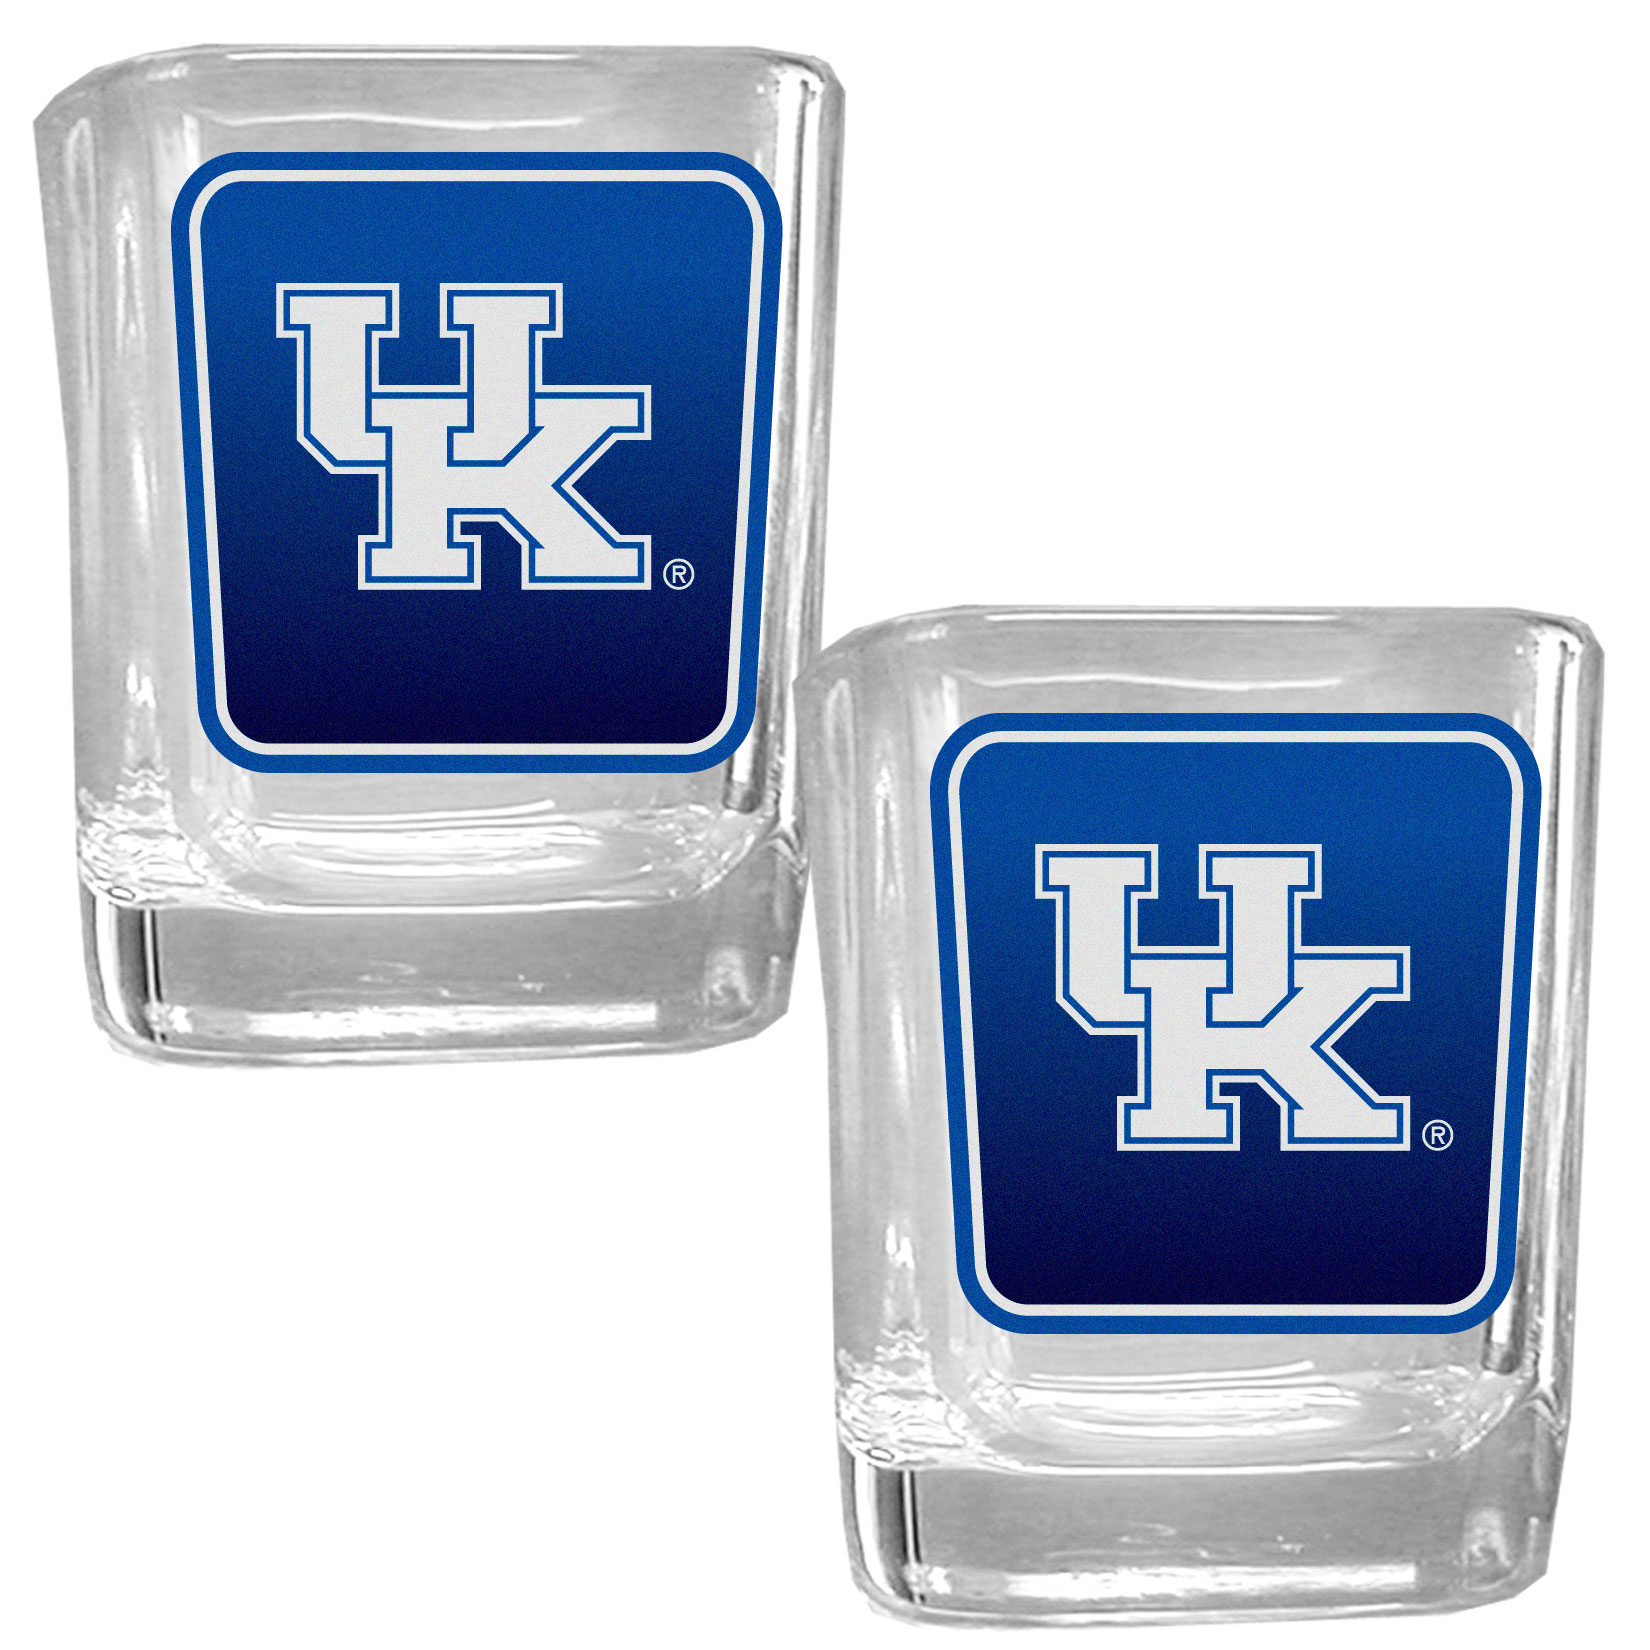 Kentucky Wildcats Square Glass Shot Glass Set - Our glass shot glasses are perfect for collectors or any game day event. The 2 ounce glasses feature bright, vidid digital Kentucky Wildcats graphics. Comes in a set of 2.